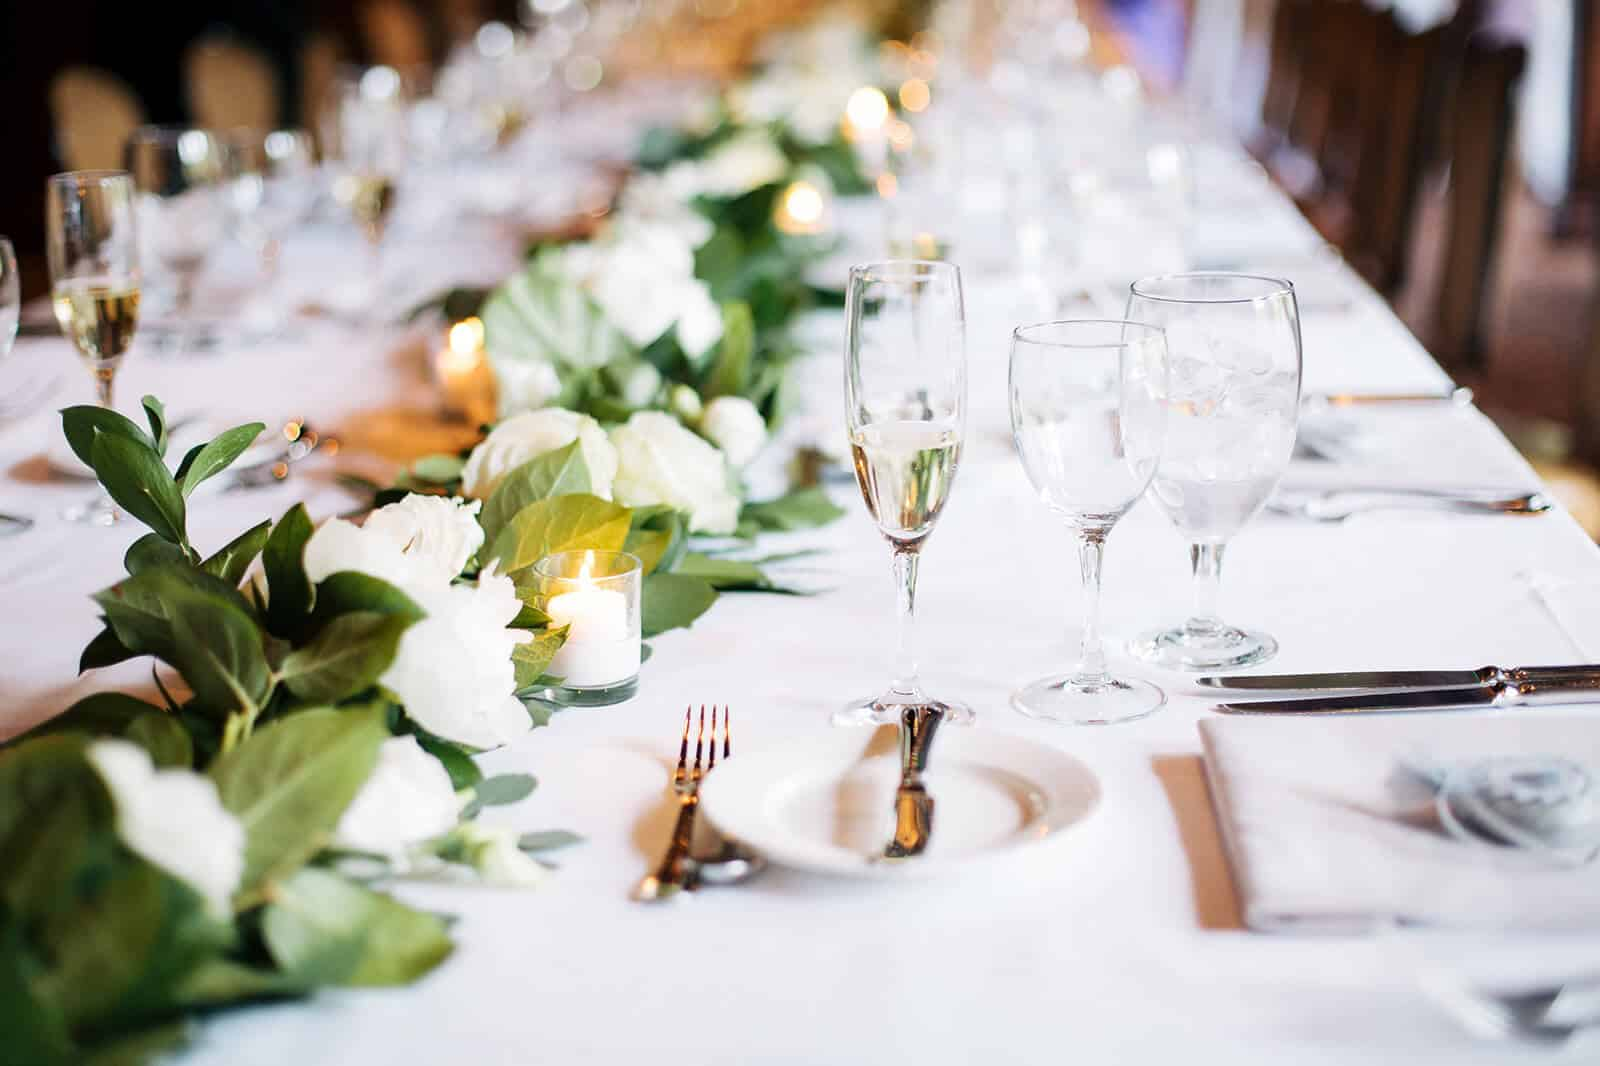 Table setting in event space